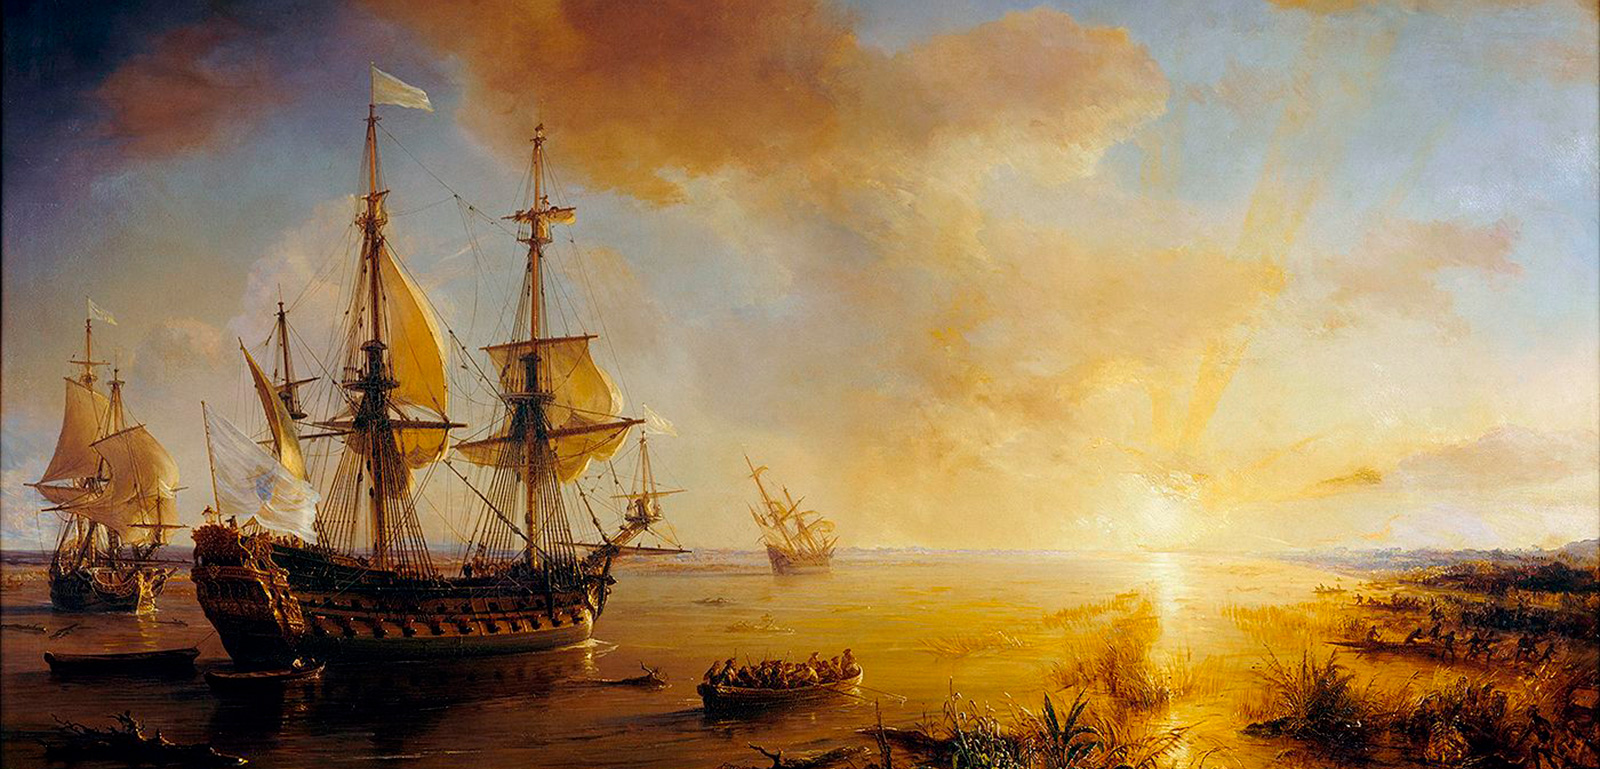 La Salle's Expedition to Louisiana in 1684, painted in 1844 by Jean Antoine Théodore de Gudin